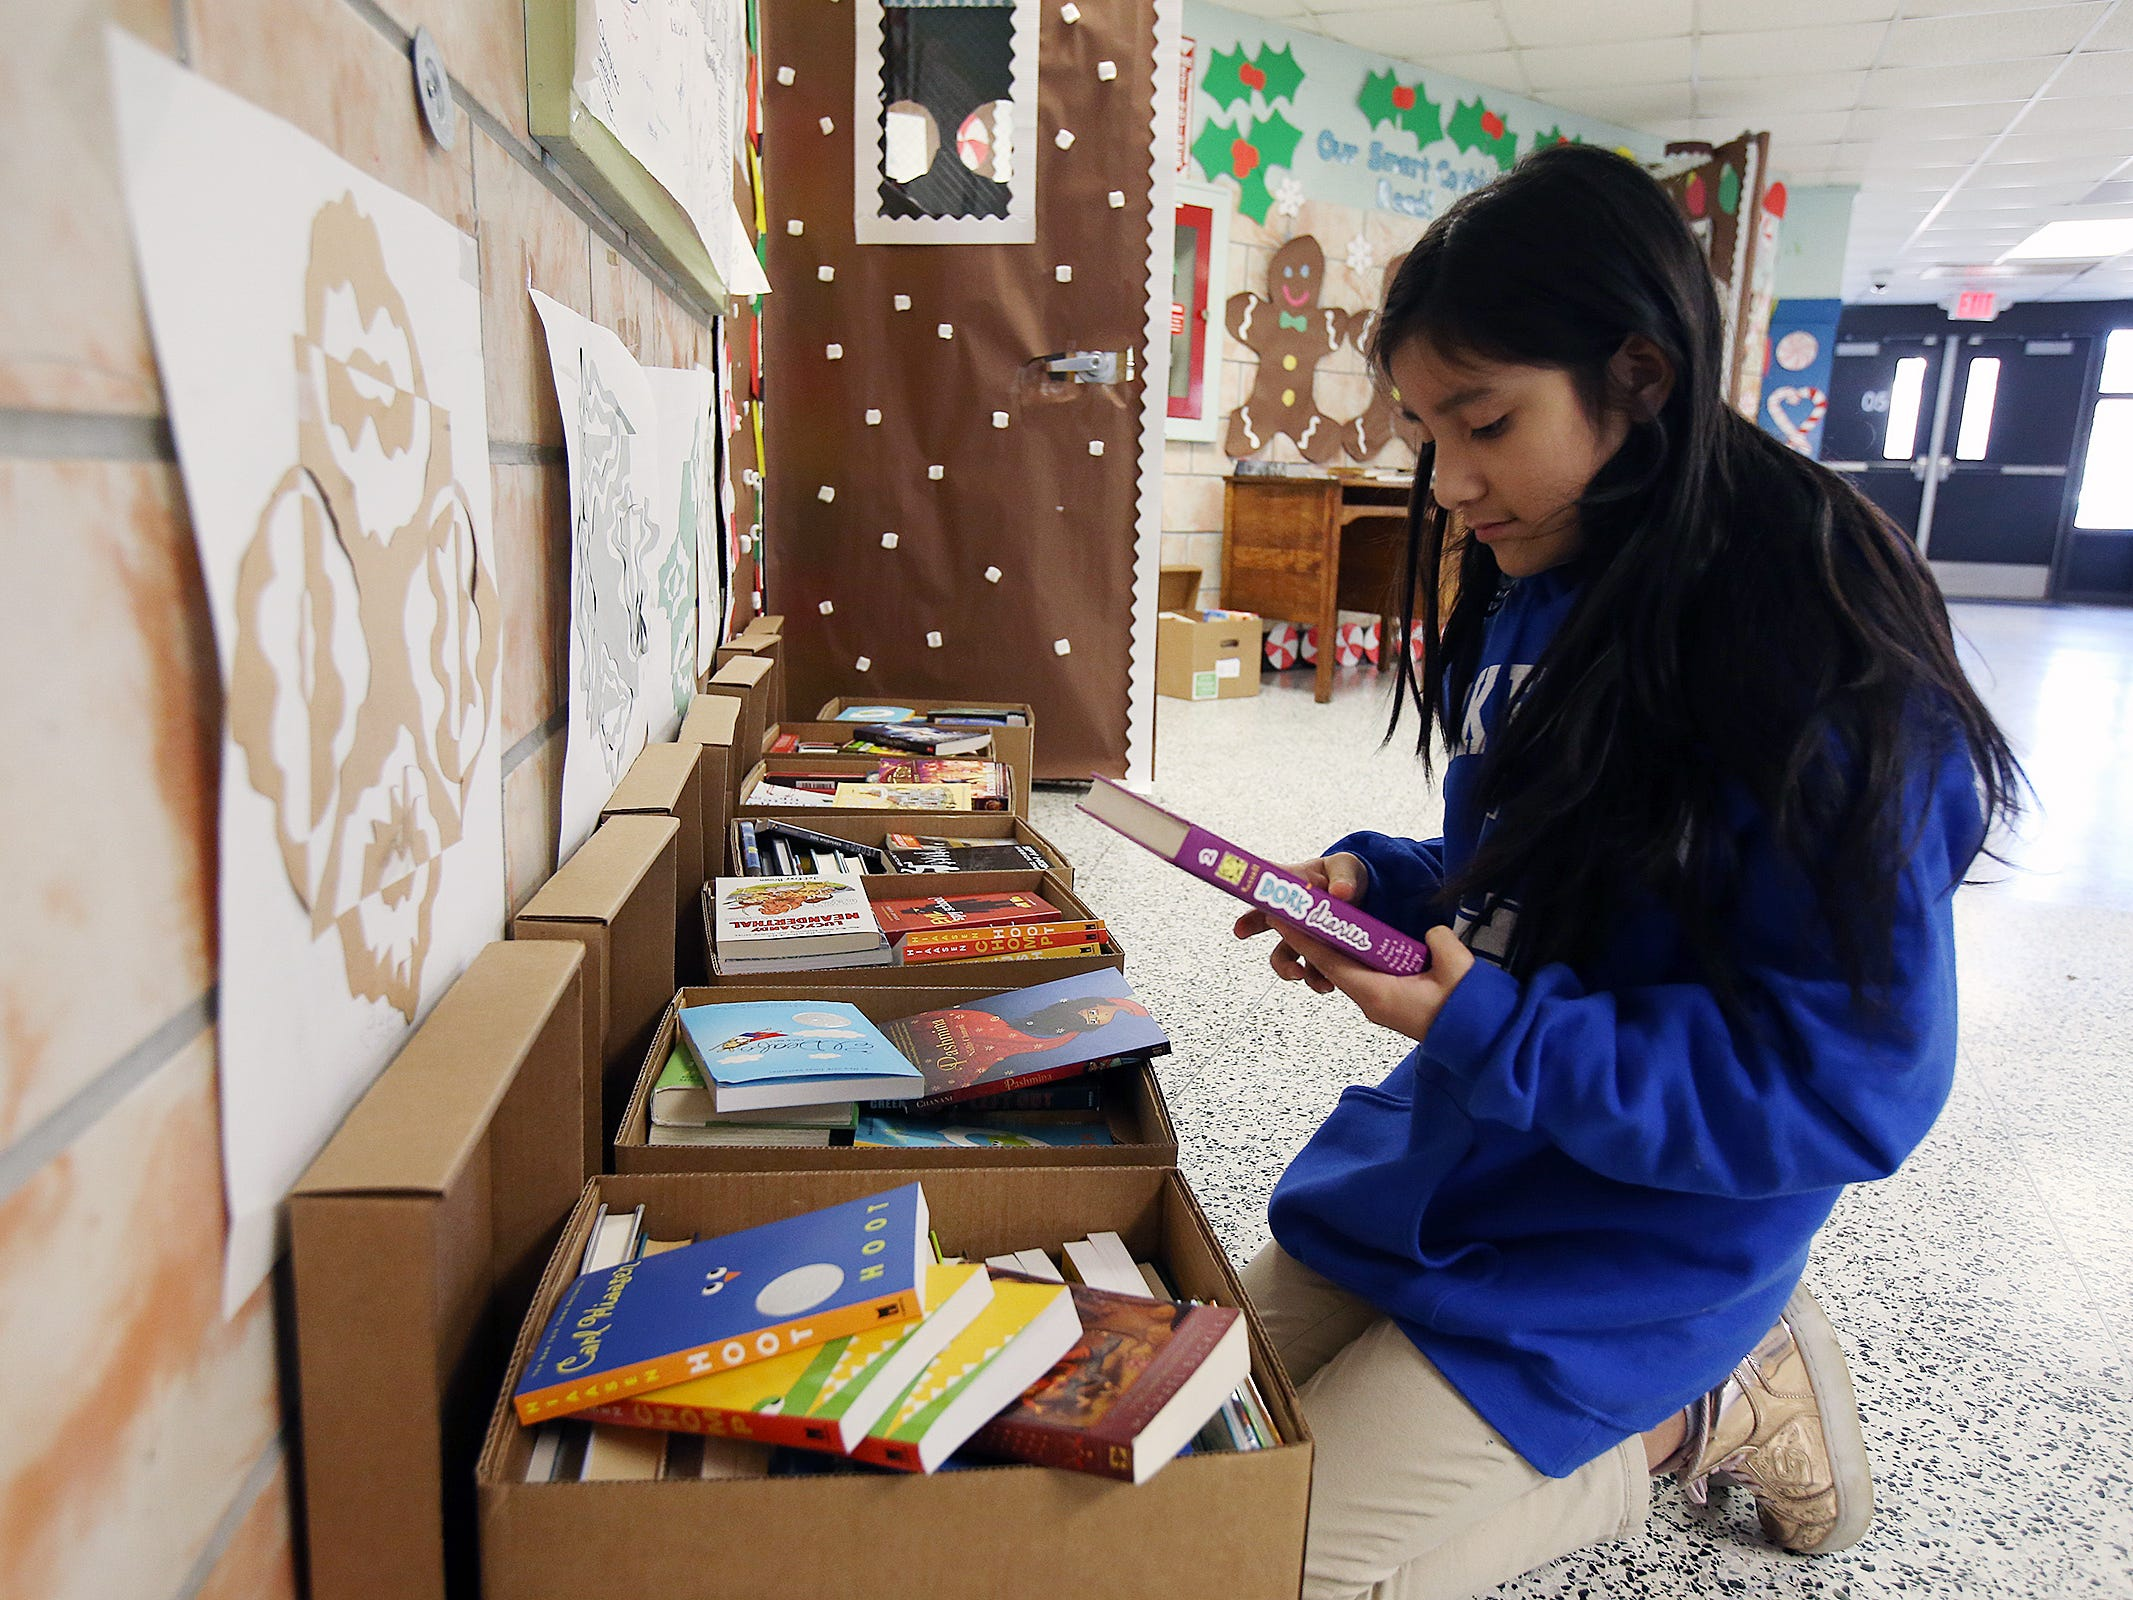 Ingrid Garcia, 11, of Lakewood chooses a book during a Bridge of Books Foundation event for sixth graders at Lakewood Middle School in Lakewood, NJ Tuesday, December 18, 2018. The Bridge of Books Foundation, which donates recreational reading books to underprivileged kids across the state, donated its one millionth book during this event.